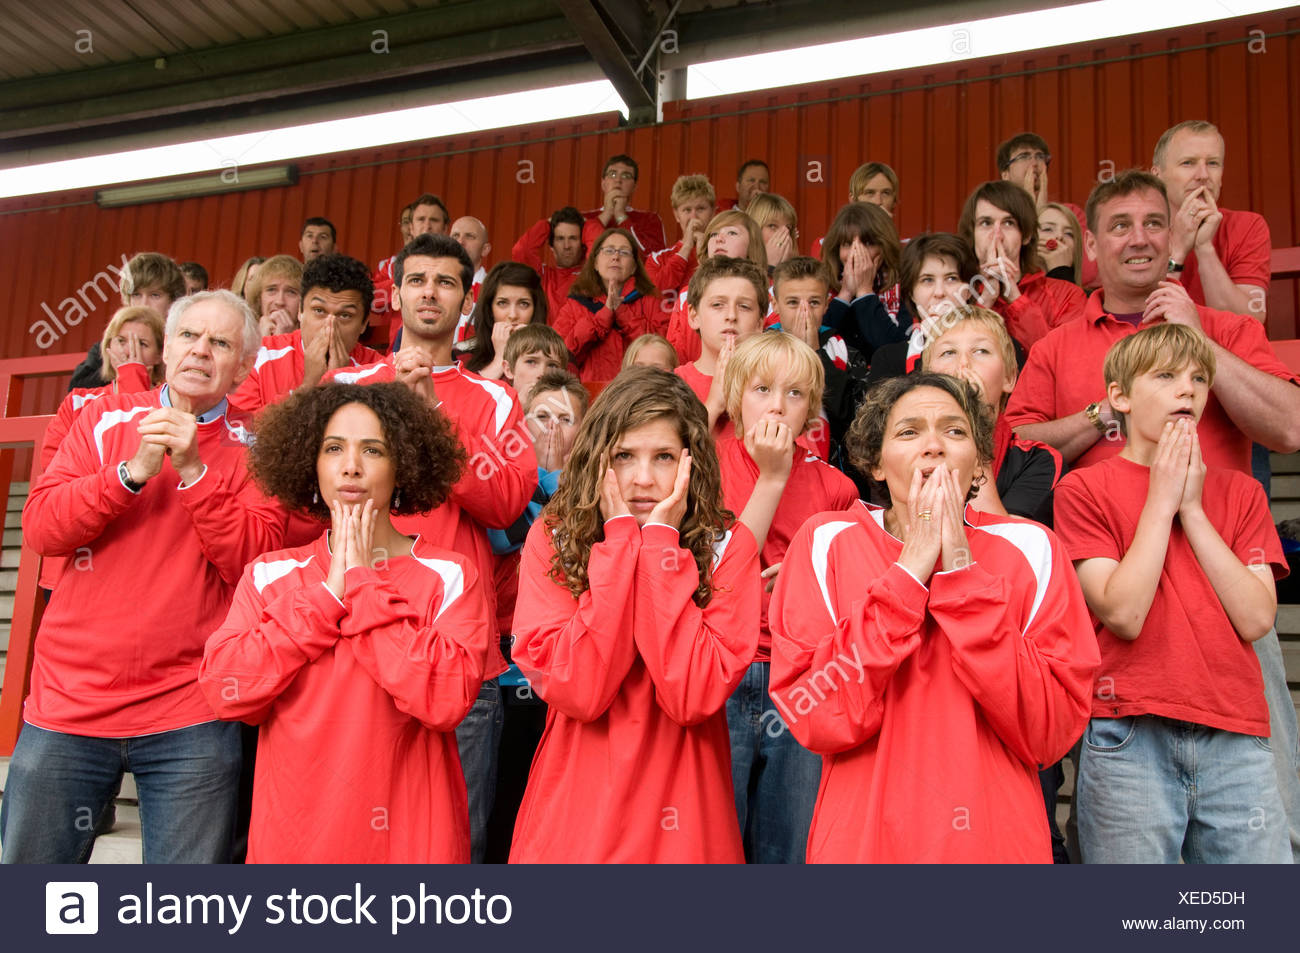 Group of nervous football supporters - Stock Image